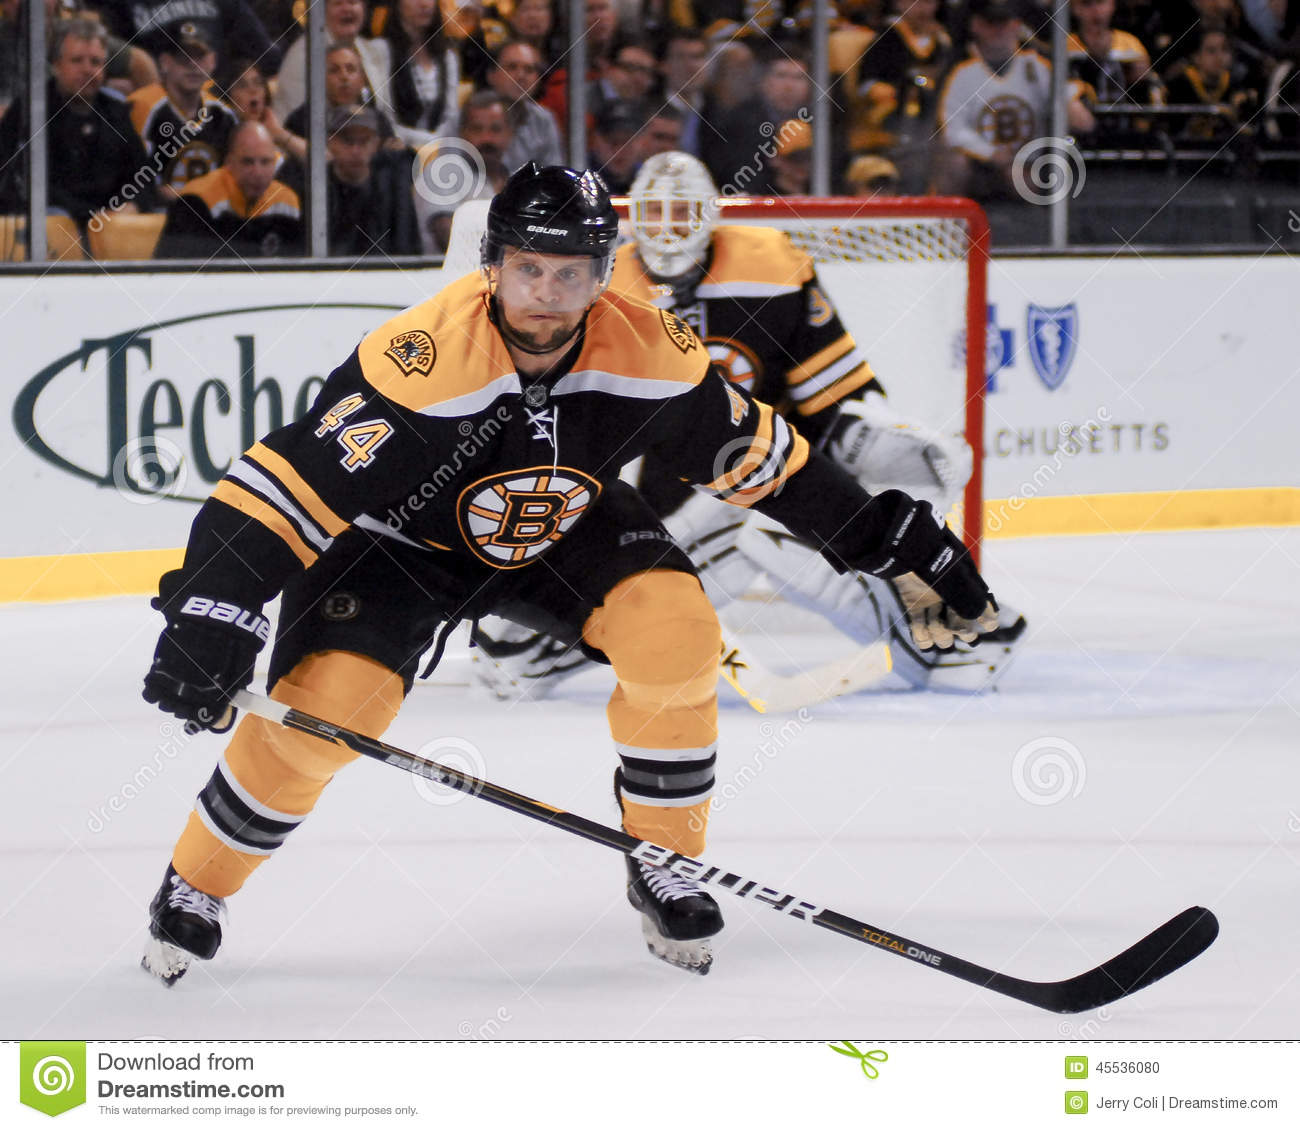 finest selection 9735a b9f5f Dennis Seidenberg, Boston Bruins Defenseman. Editorial Image ...